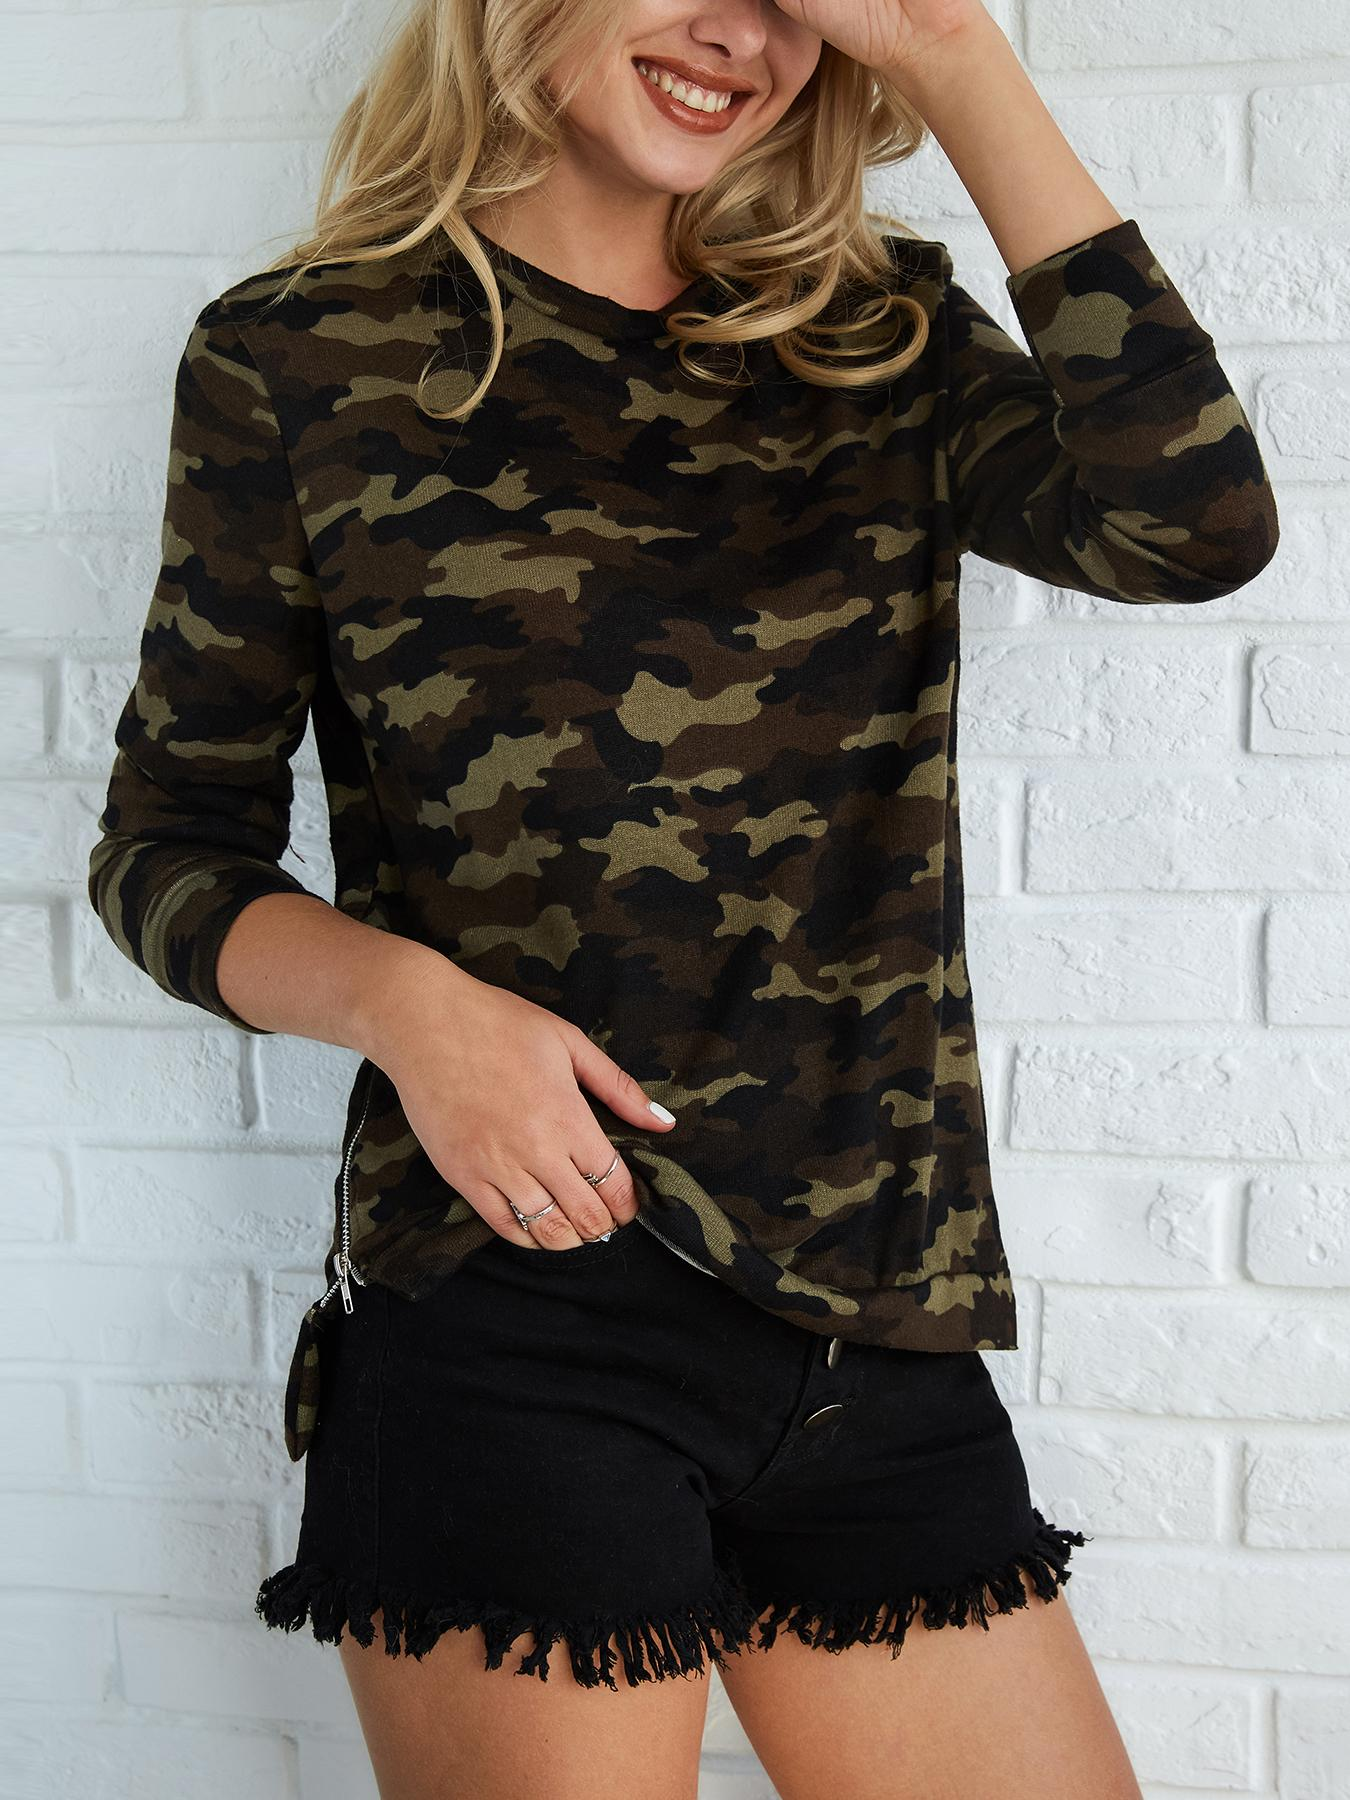 Stylish Camouflage Print Flannel Top